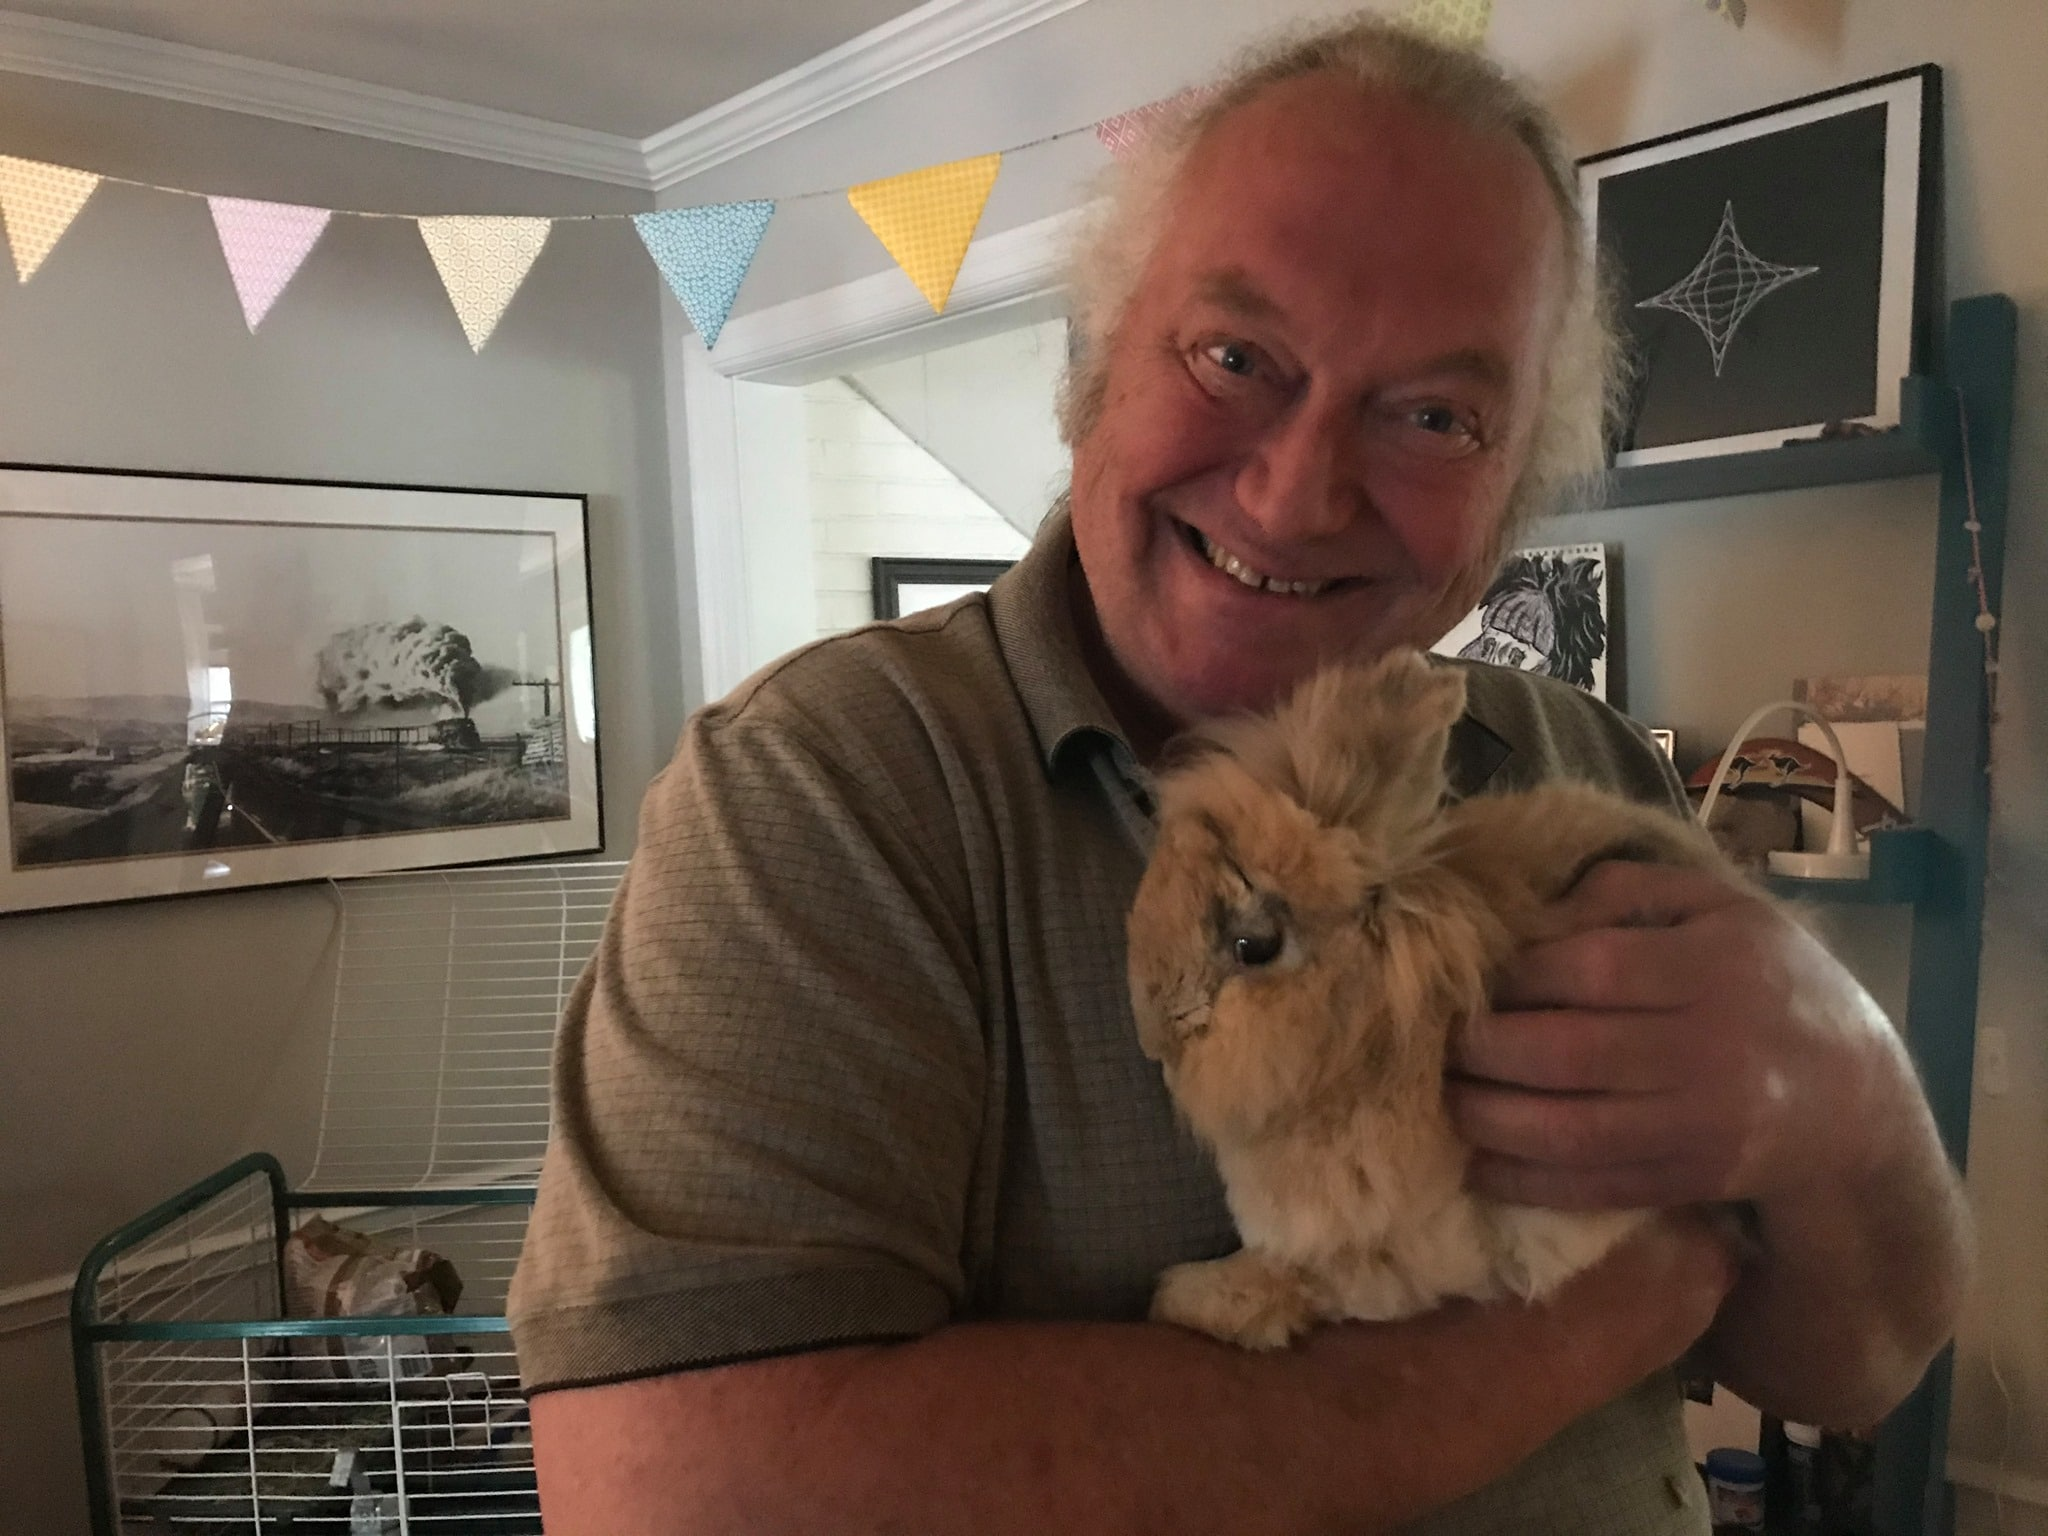 Roger Oyster with Clover the rabbit